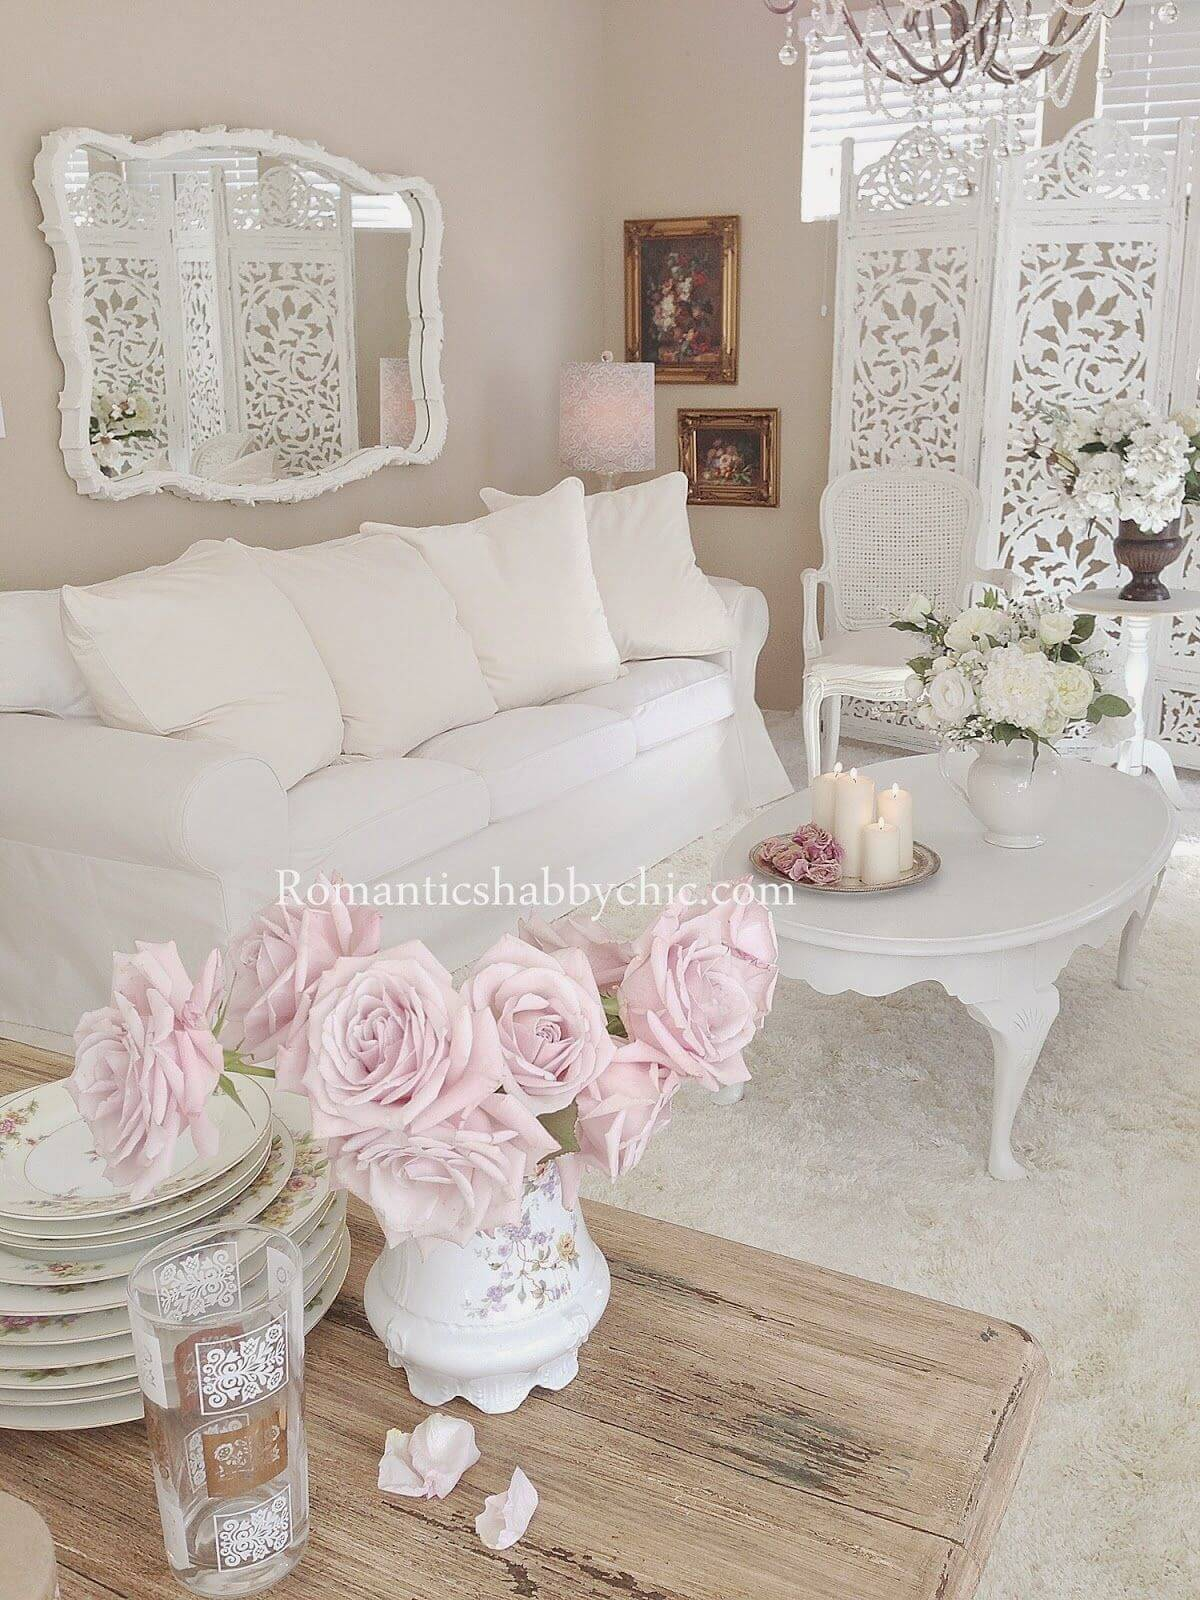 1. White On White With Pink Flowers